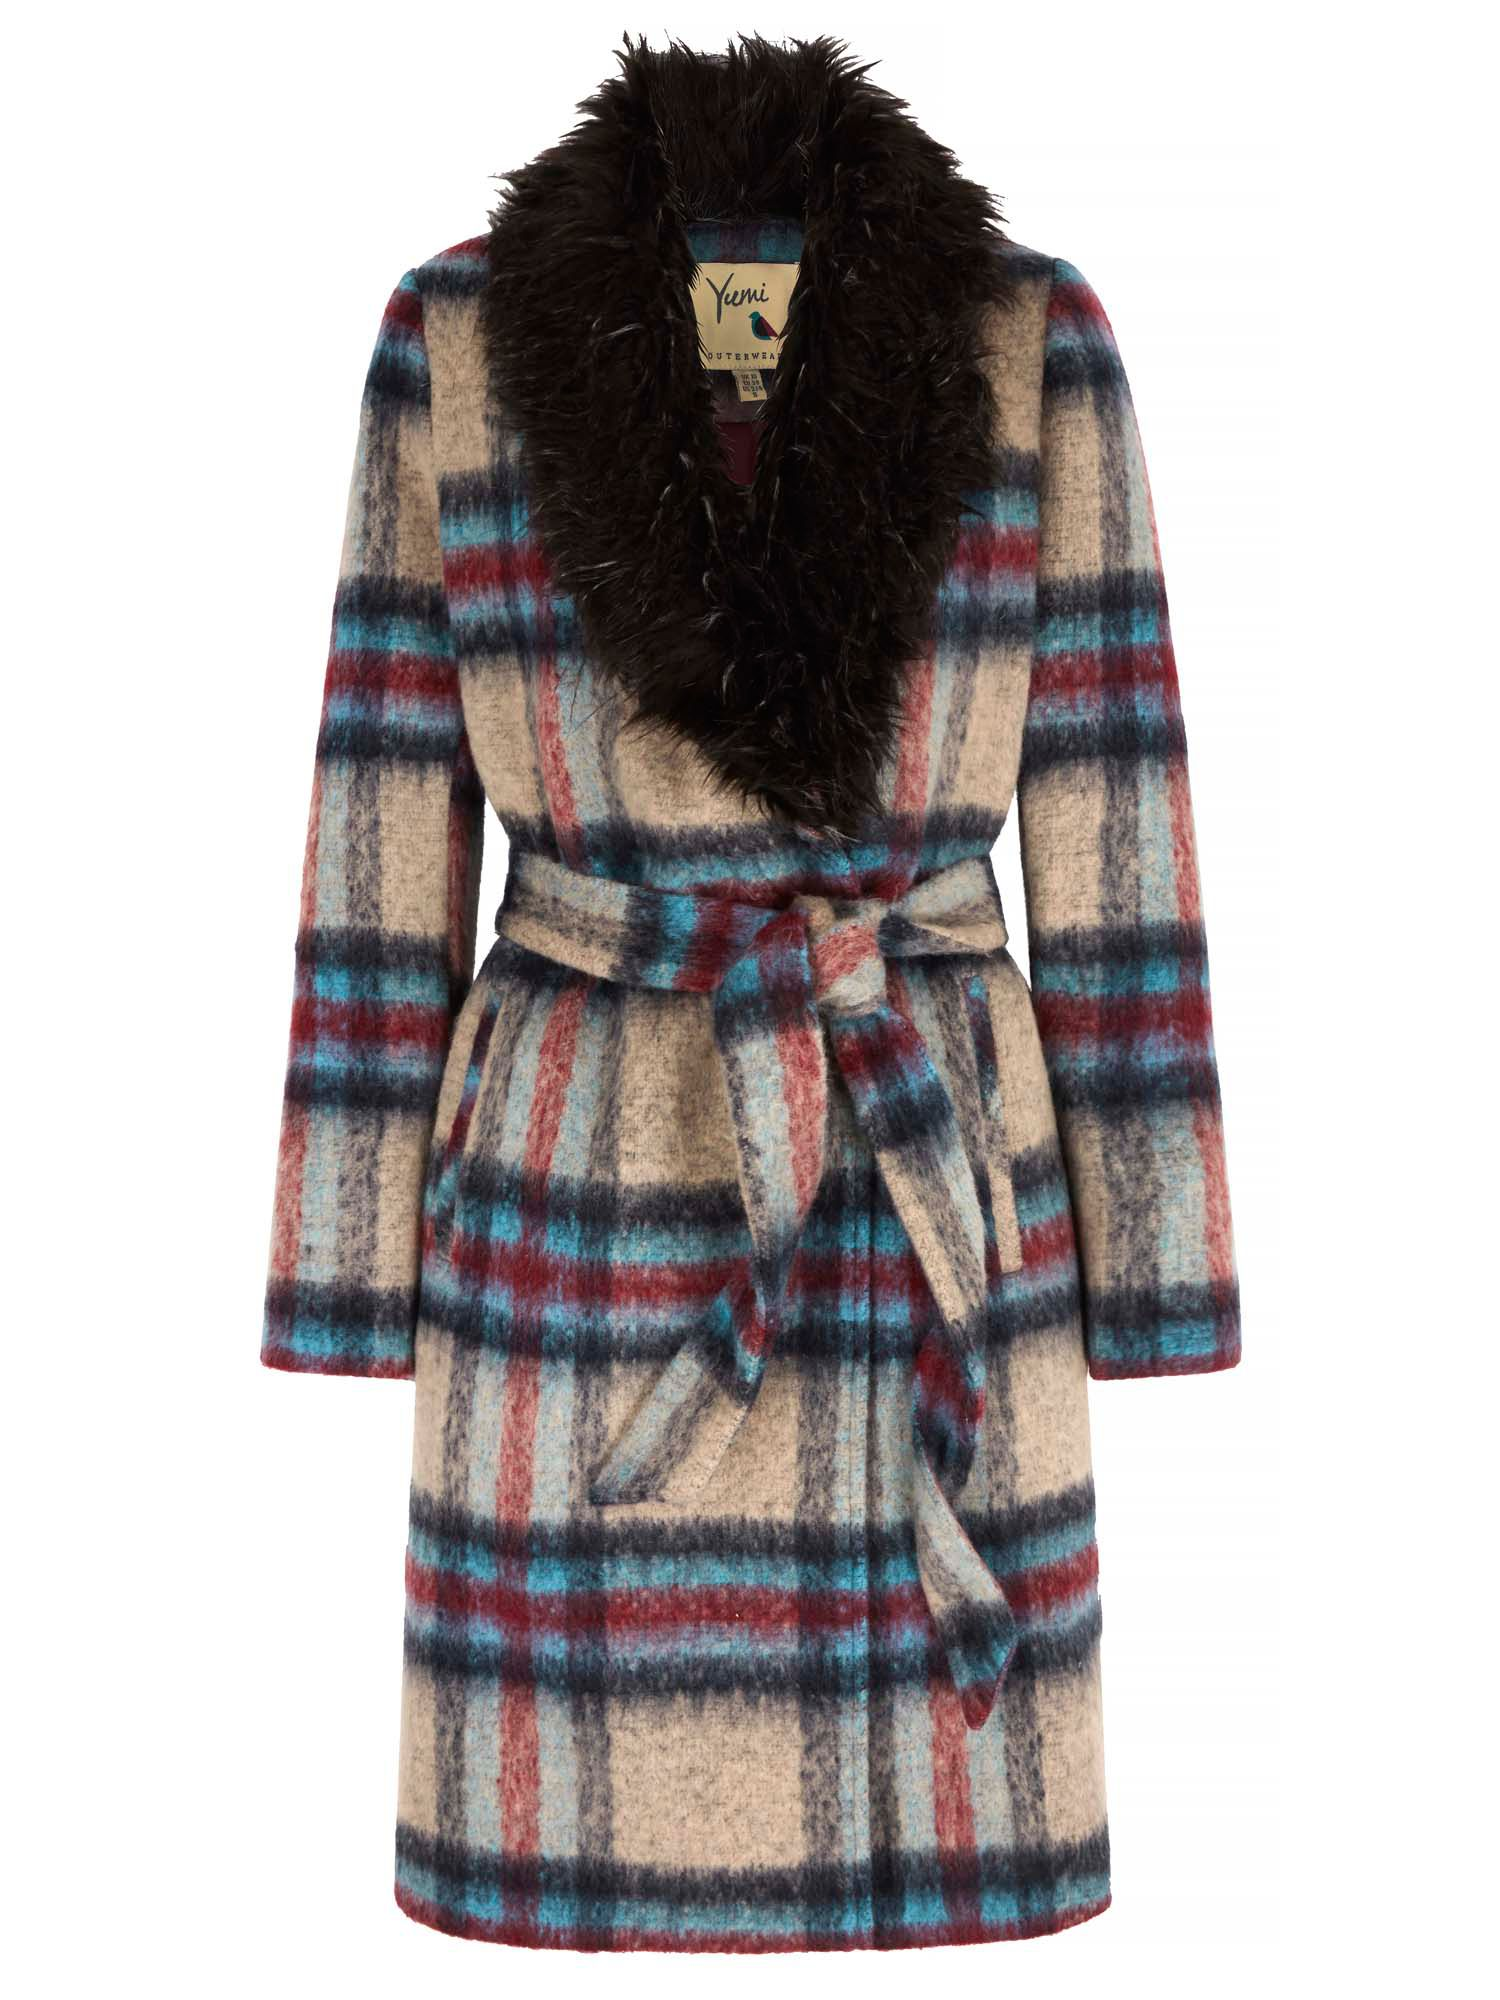 Shop 1960s Style Coats and Jackets Yumi Check Faux Fur Collared Wrap Coat Multi-Coloured £48.00 AT vintagedancer.com